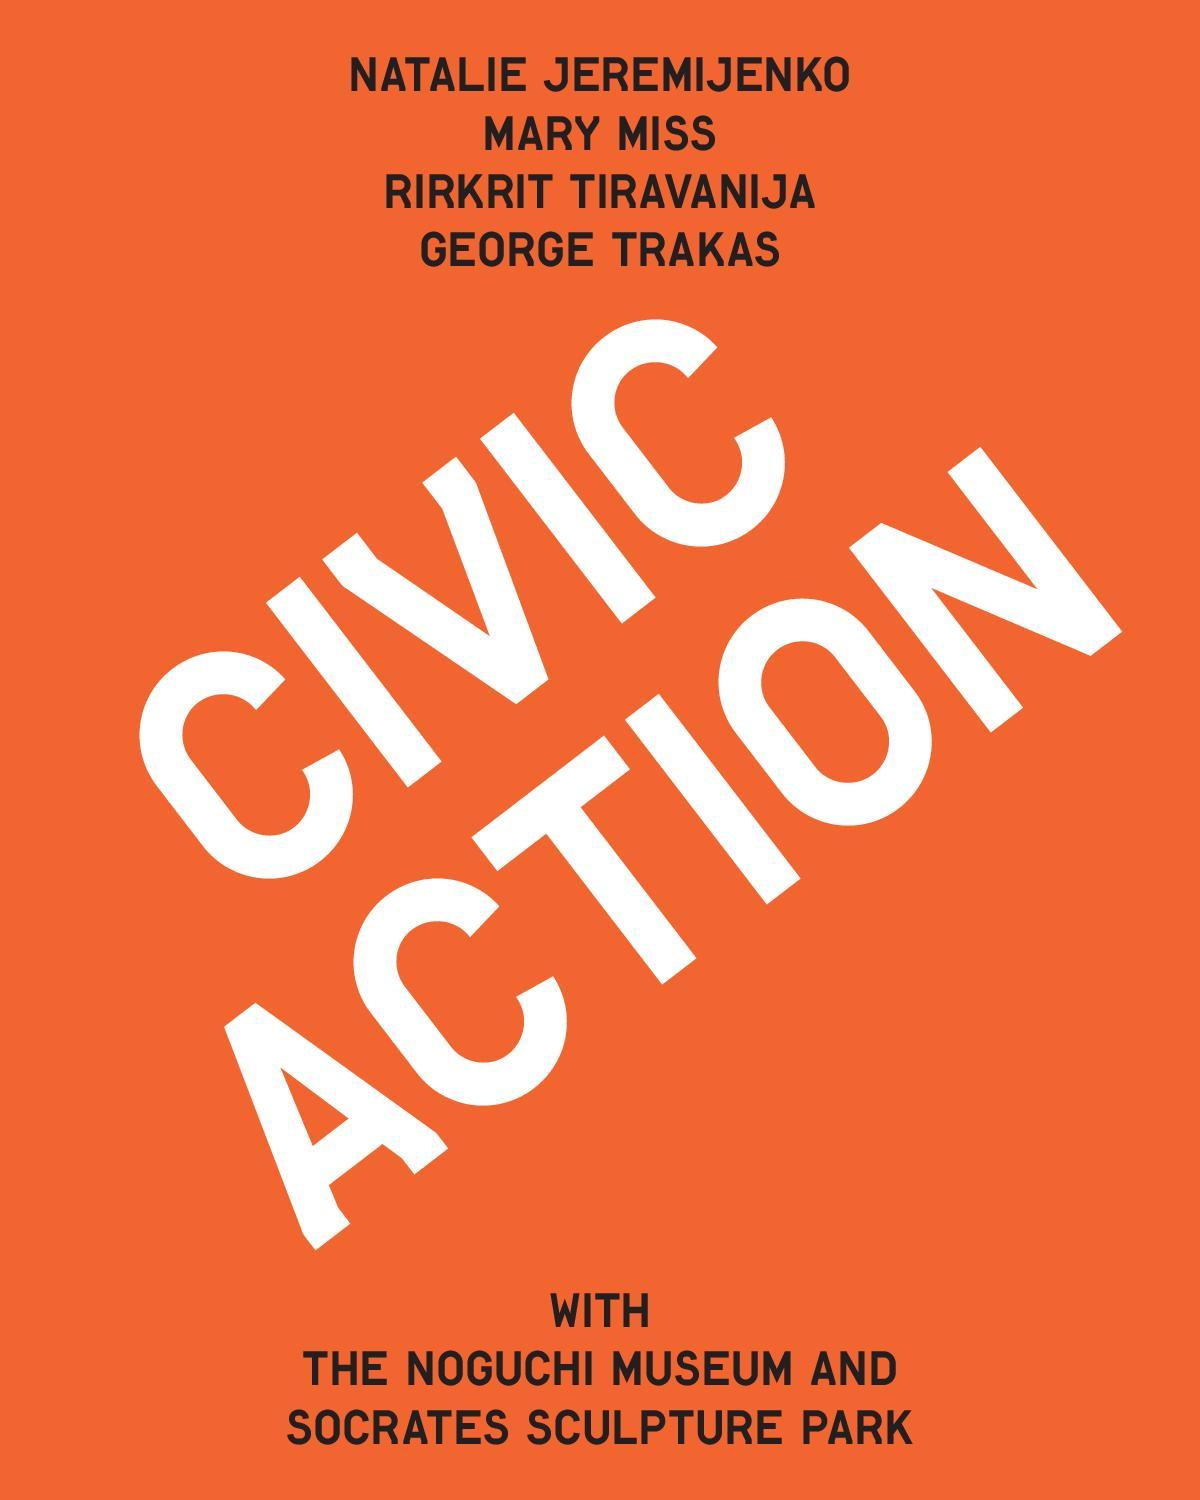 CIVIC ACTION with The Noguchi Museum & Socrates Sculpture ParkAs urban planning and civic projects become more interdisciplinary, Civic Action reconsiders the role that artists and cultural institutions can play. The Noguchi Museum and Socrates Sculpture Park engaged four artists—Natalie Jeremijenko, Mary Miss, Rirkrit Tiravanija, and George Trakas—to lead teams to develop new strategies for community development in the surrounding neighborhood of Long Island City. These partnerships yielded an array of innovative and surprising approaches, and also an argument for new urban planning models.